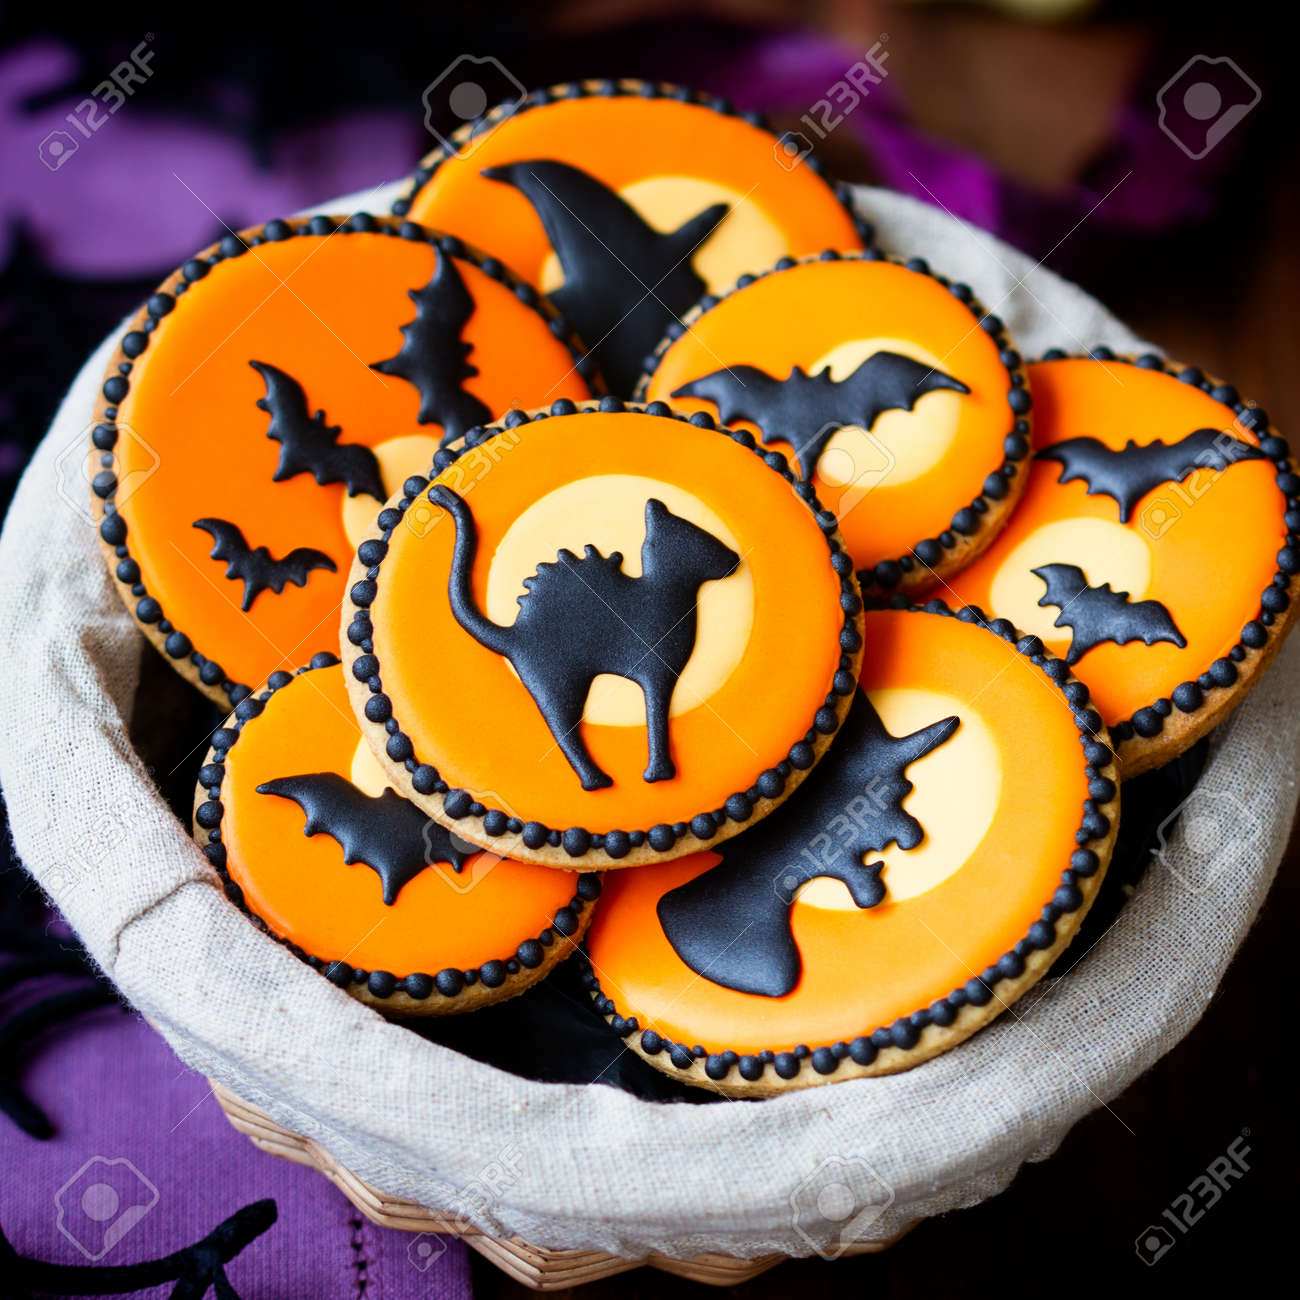 Basket Of Halloween Cookies Stock Photo, Picture And Royalty Free ...